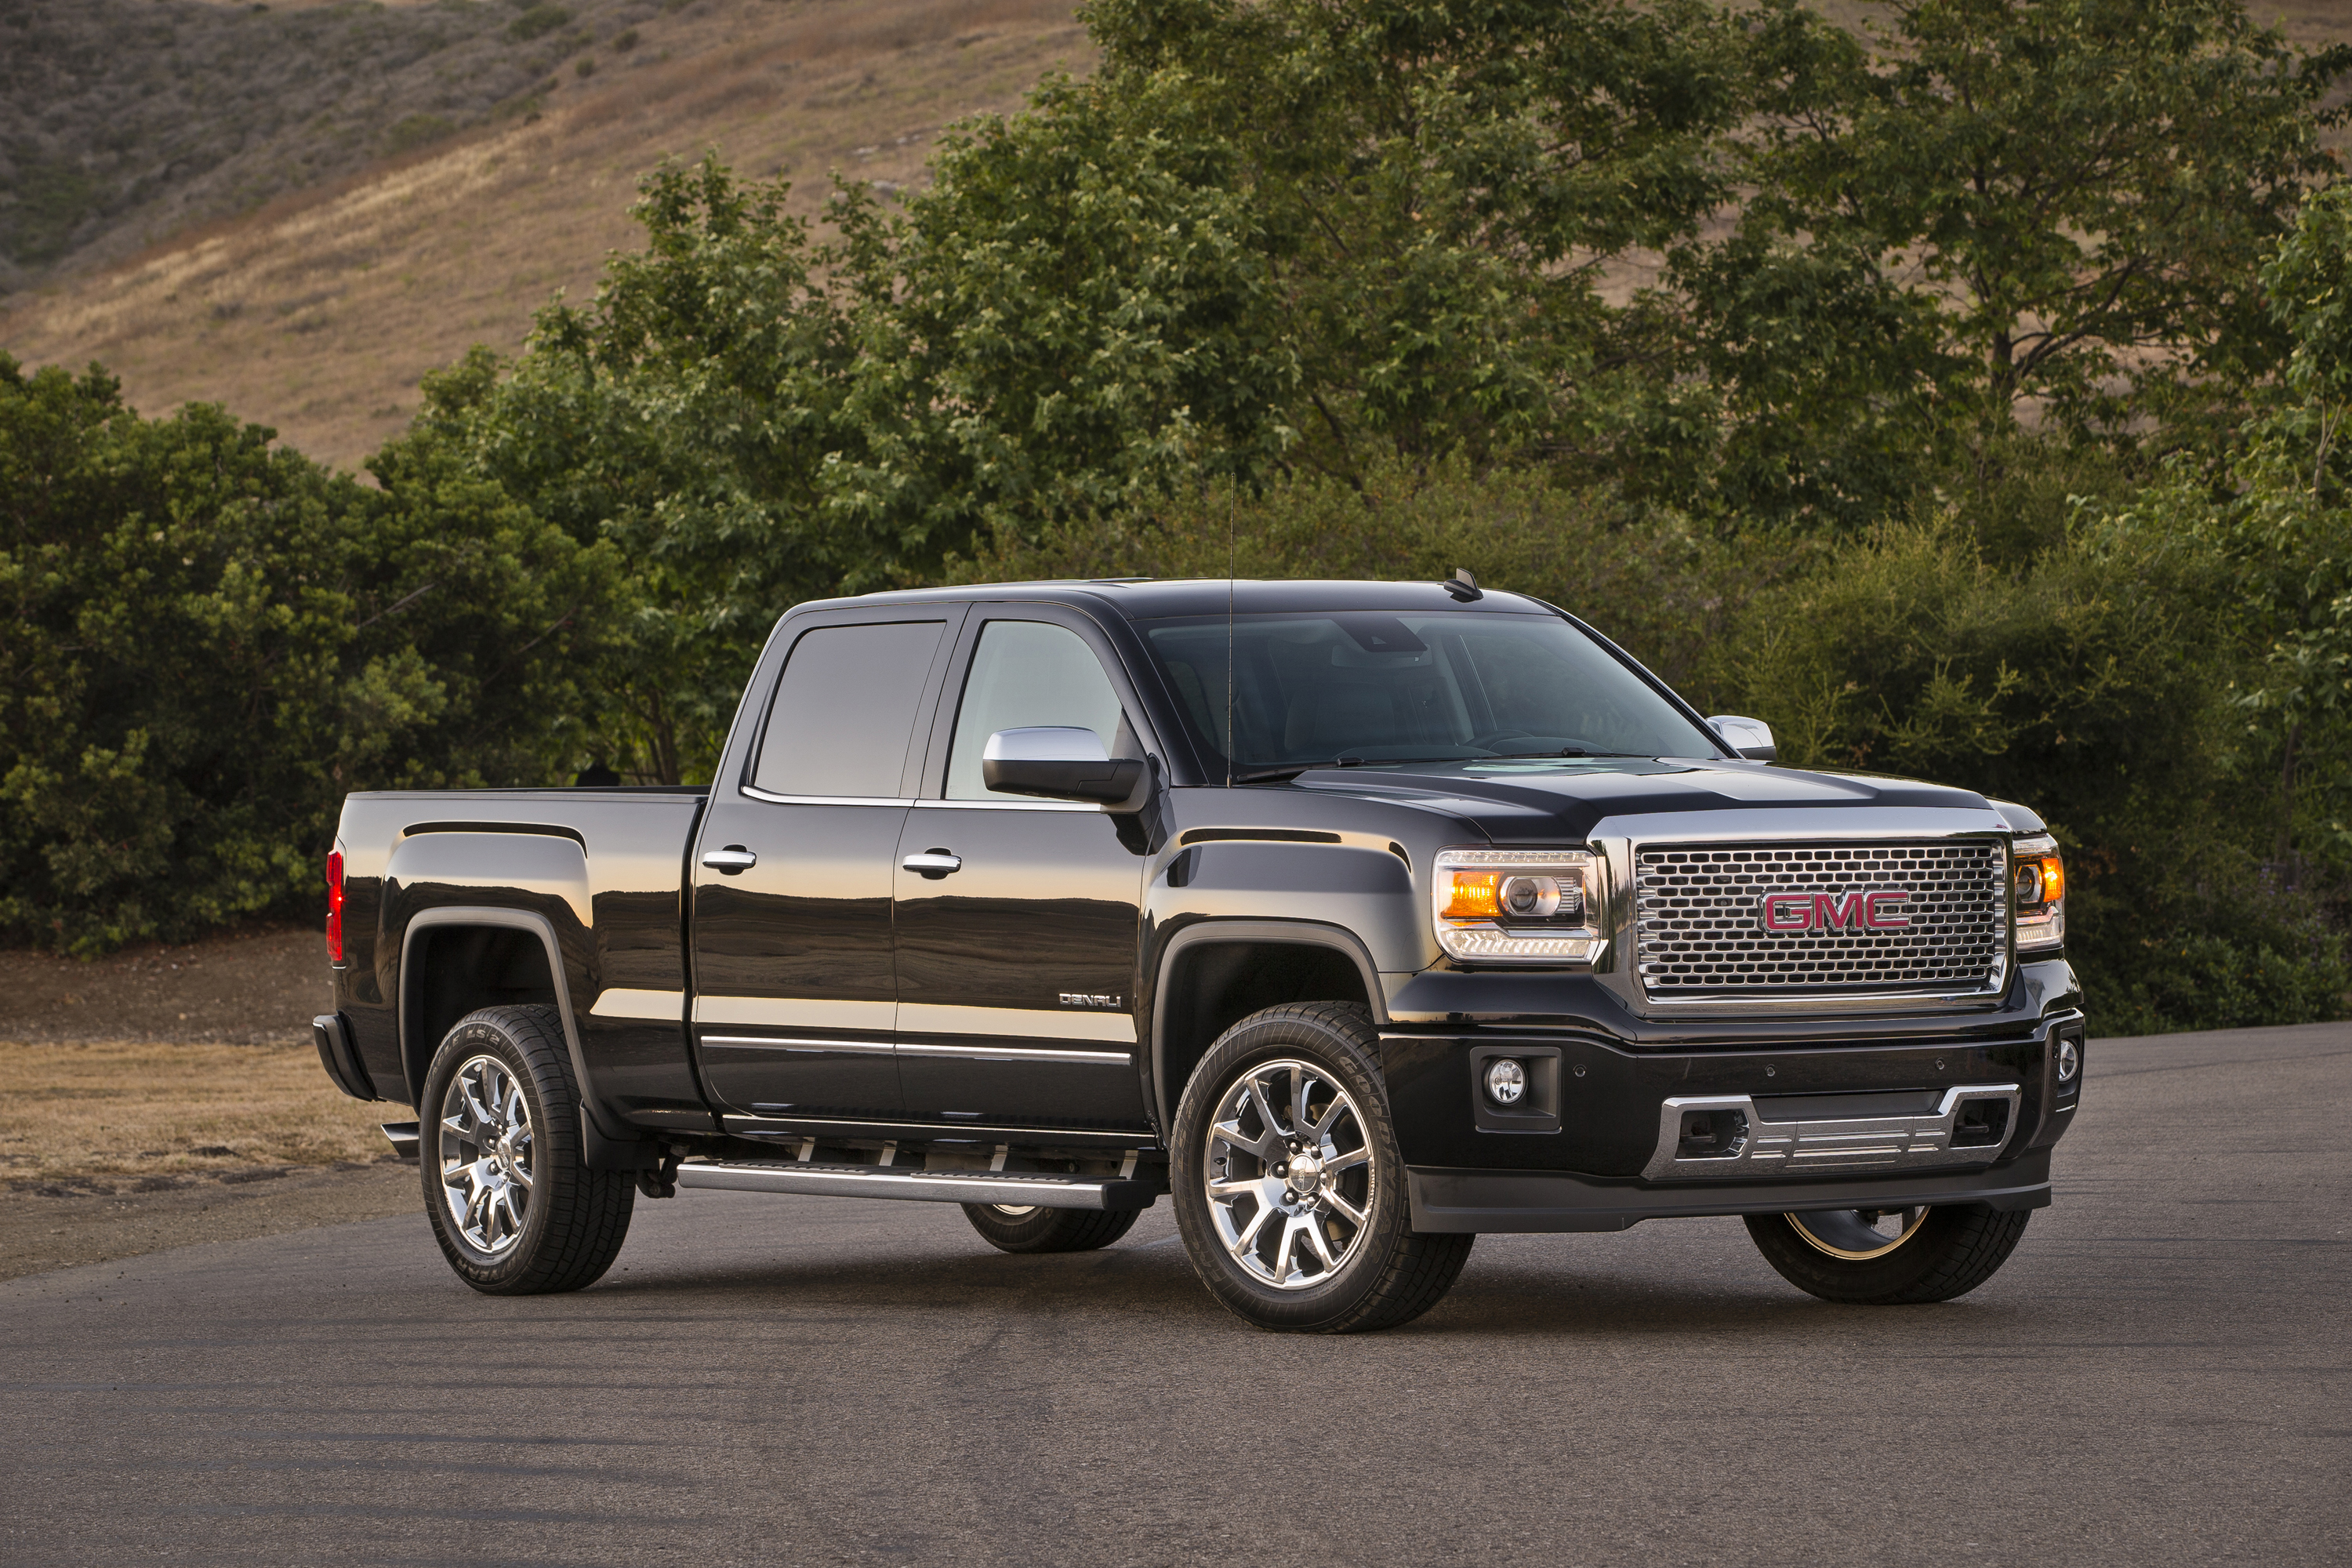 mpg delivers fe jun detail v en content sierra pages news highway us media gmc